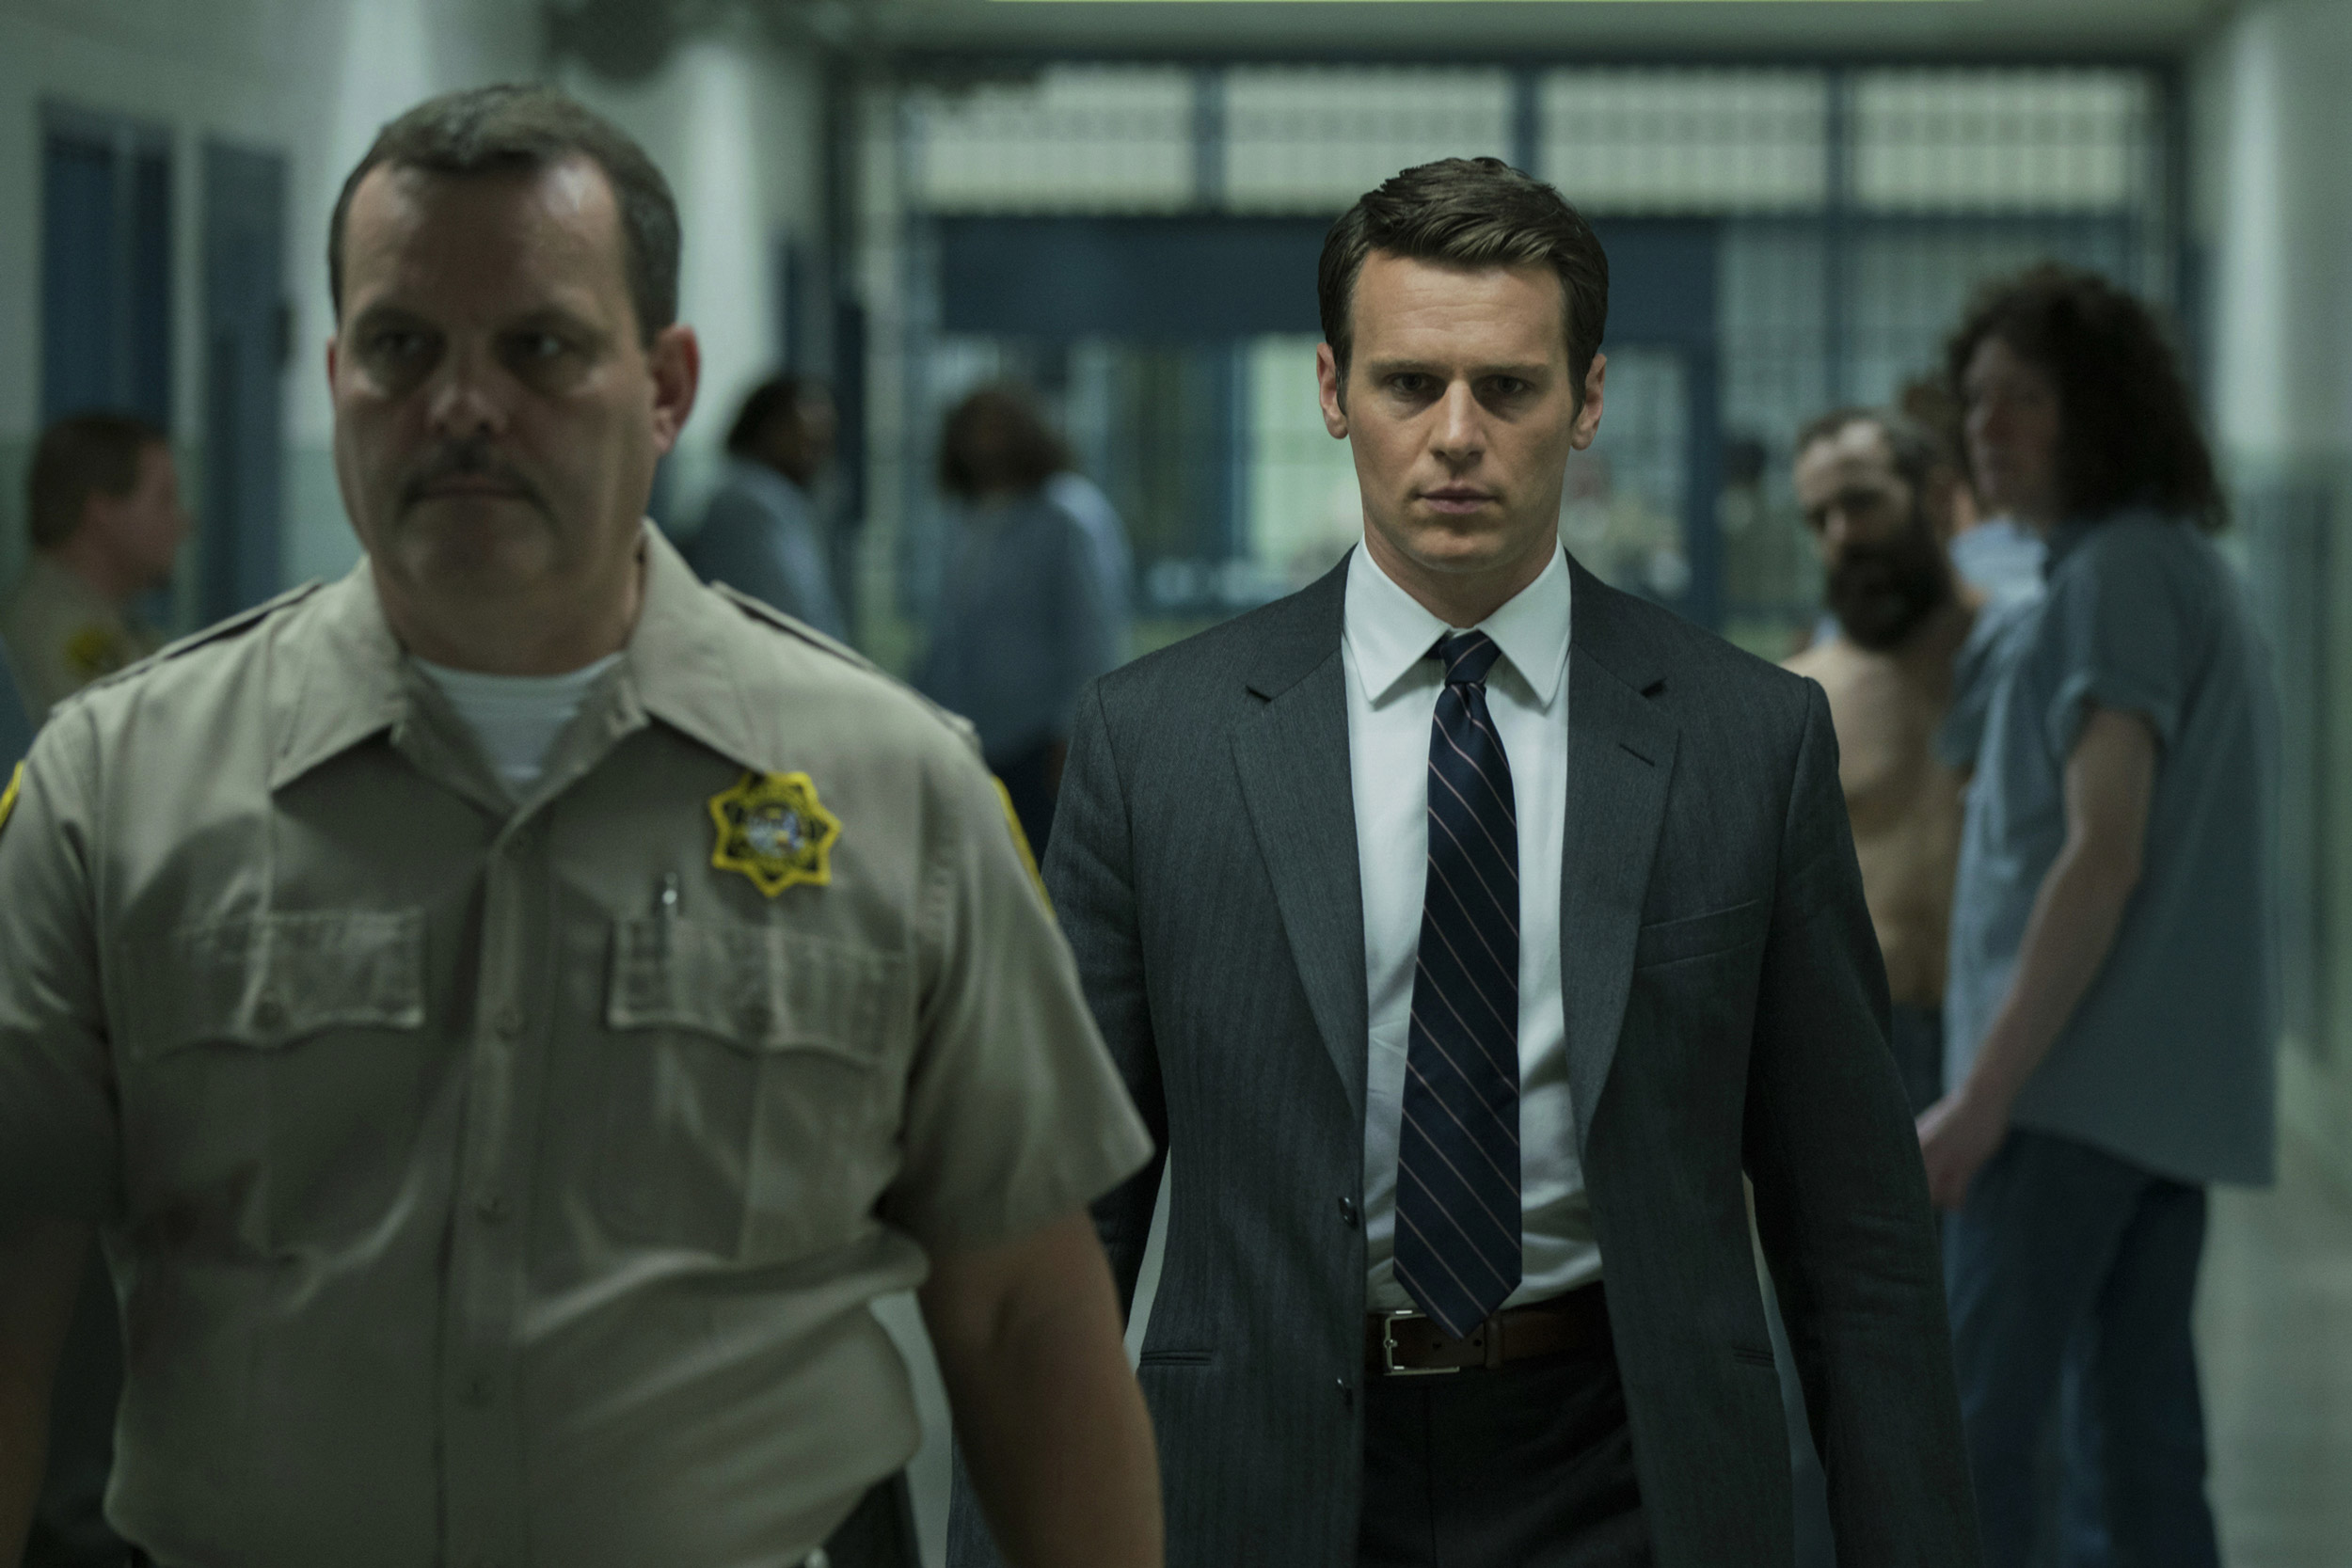 11_049_mindhunter_102_unit_11766r4